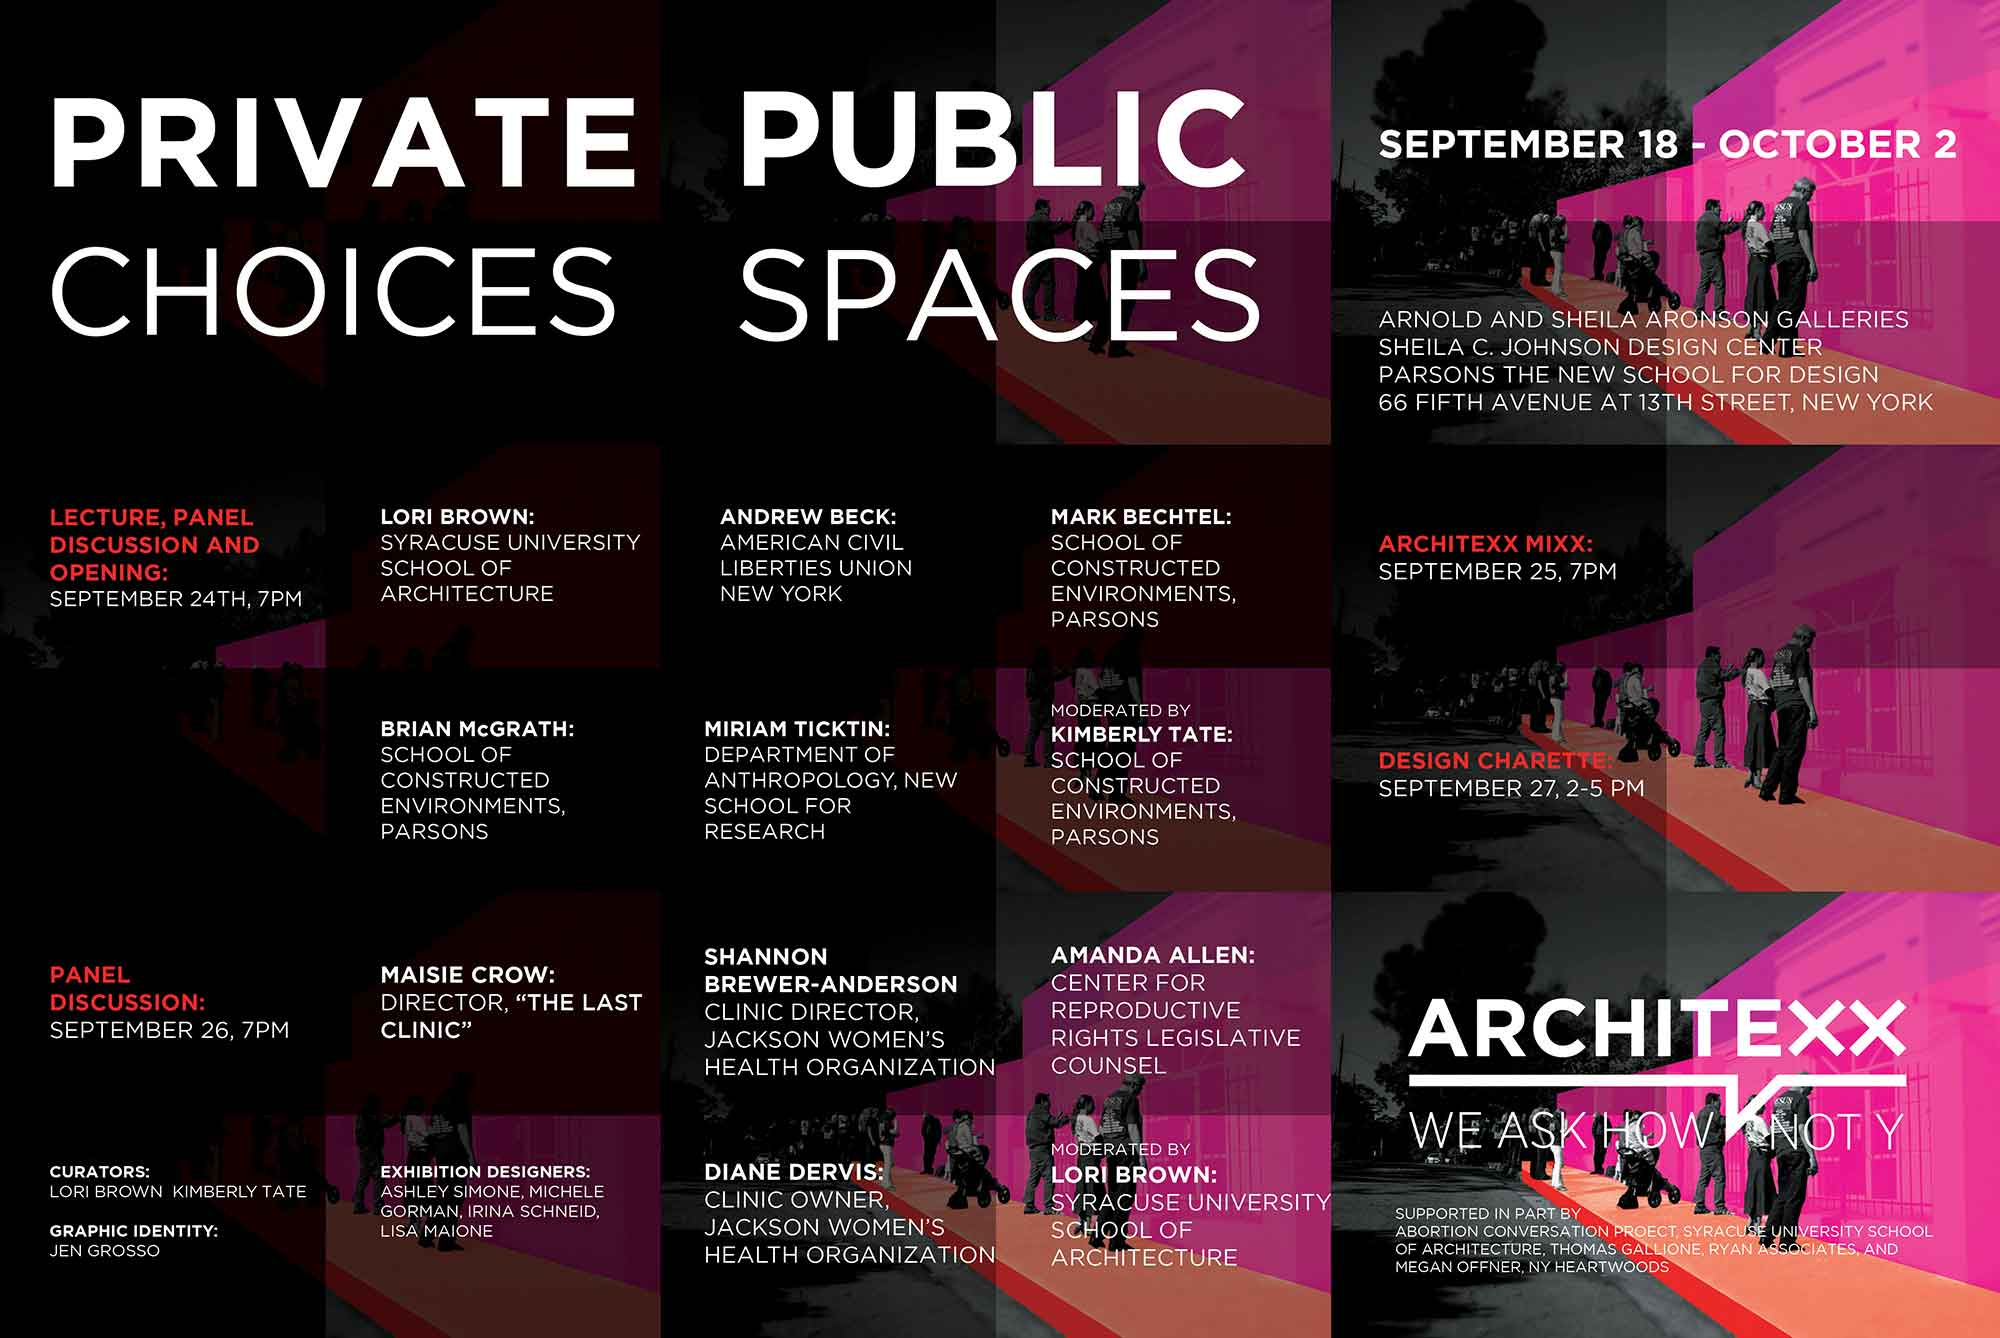 Private Choices, Public Spaces